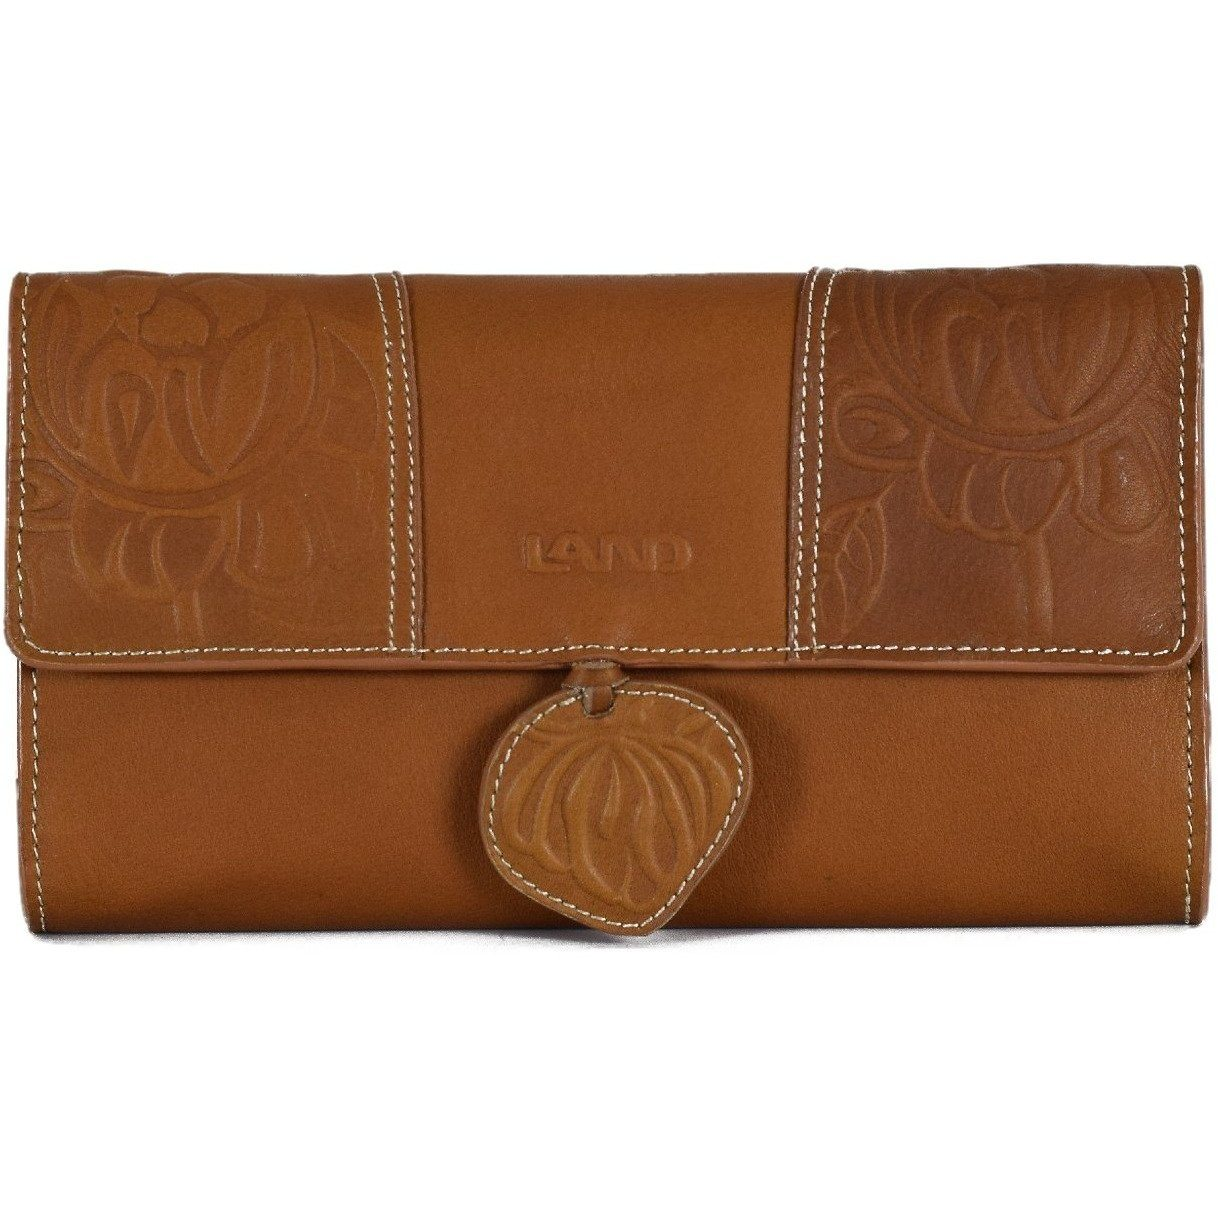 Magnolia Tri-fold Wallet, Wallet | LAND Leather